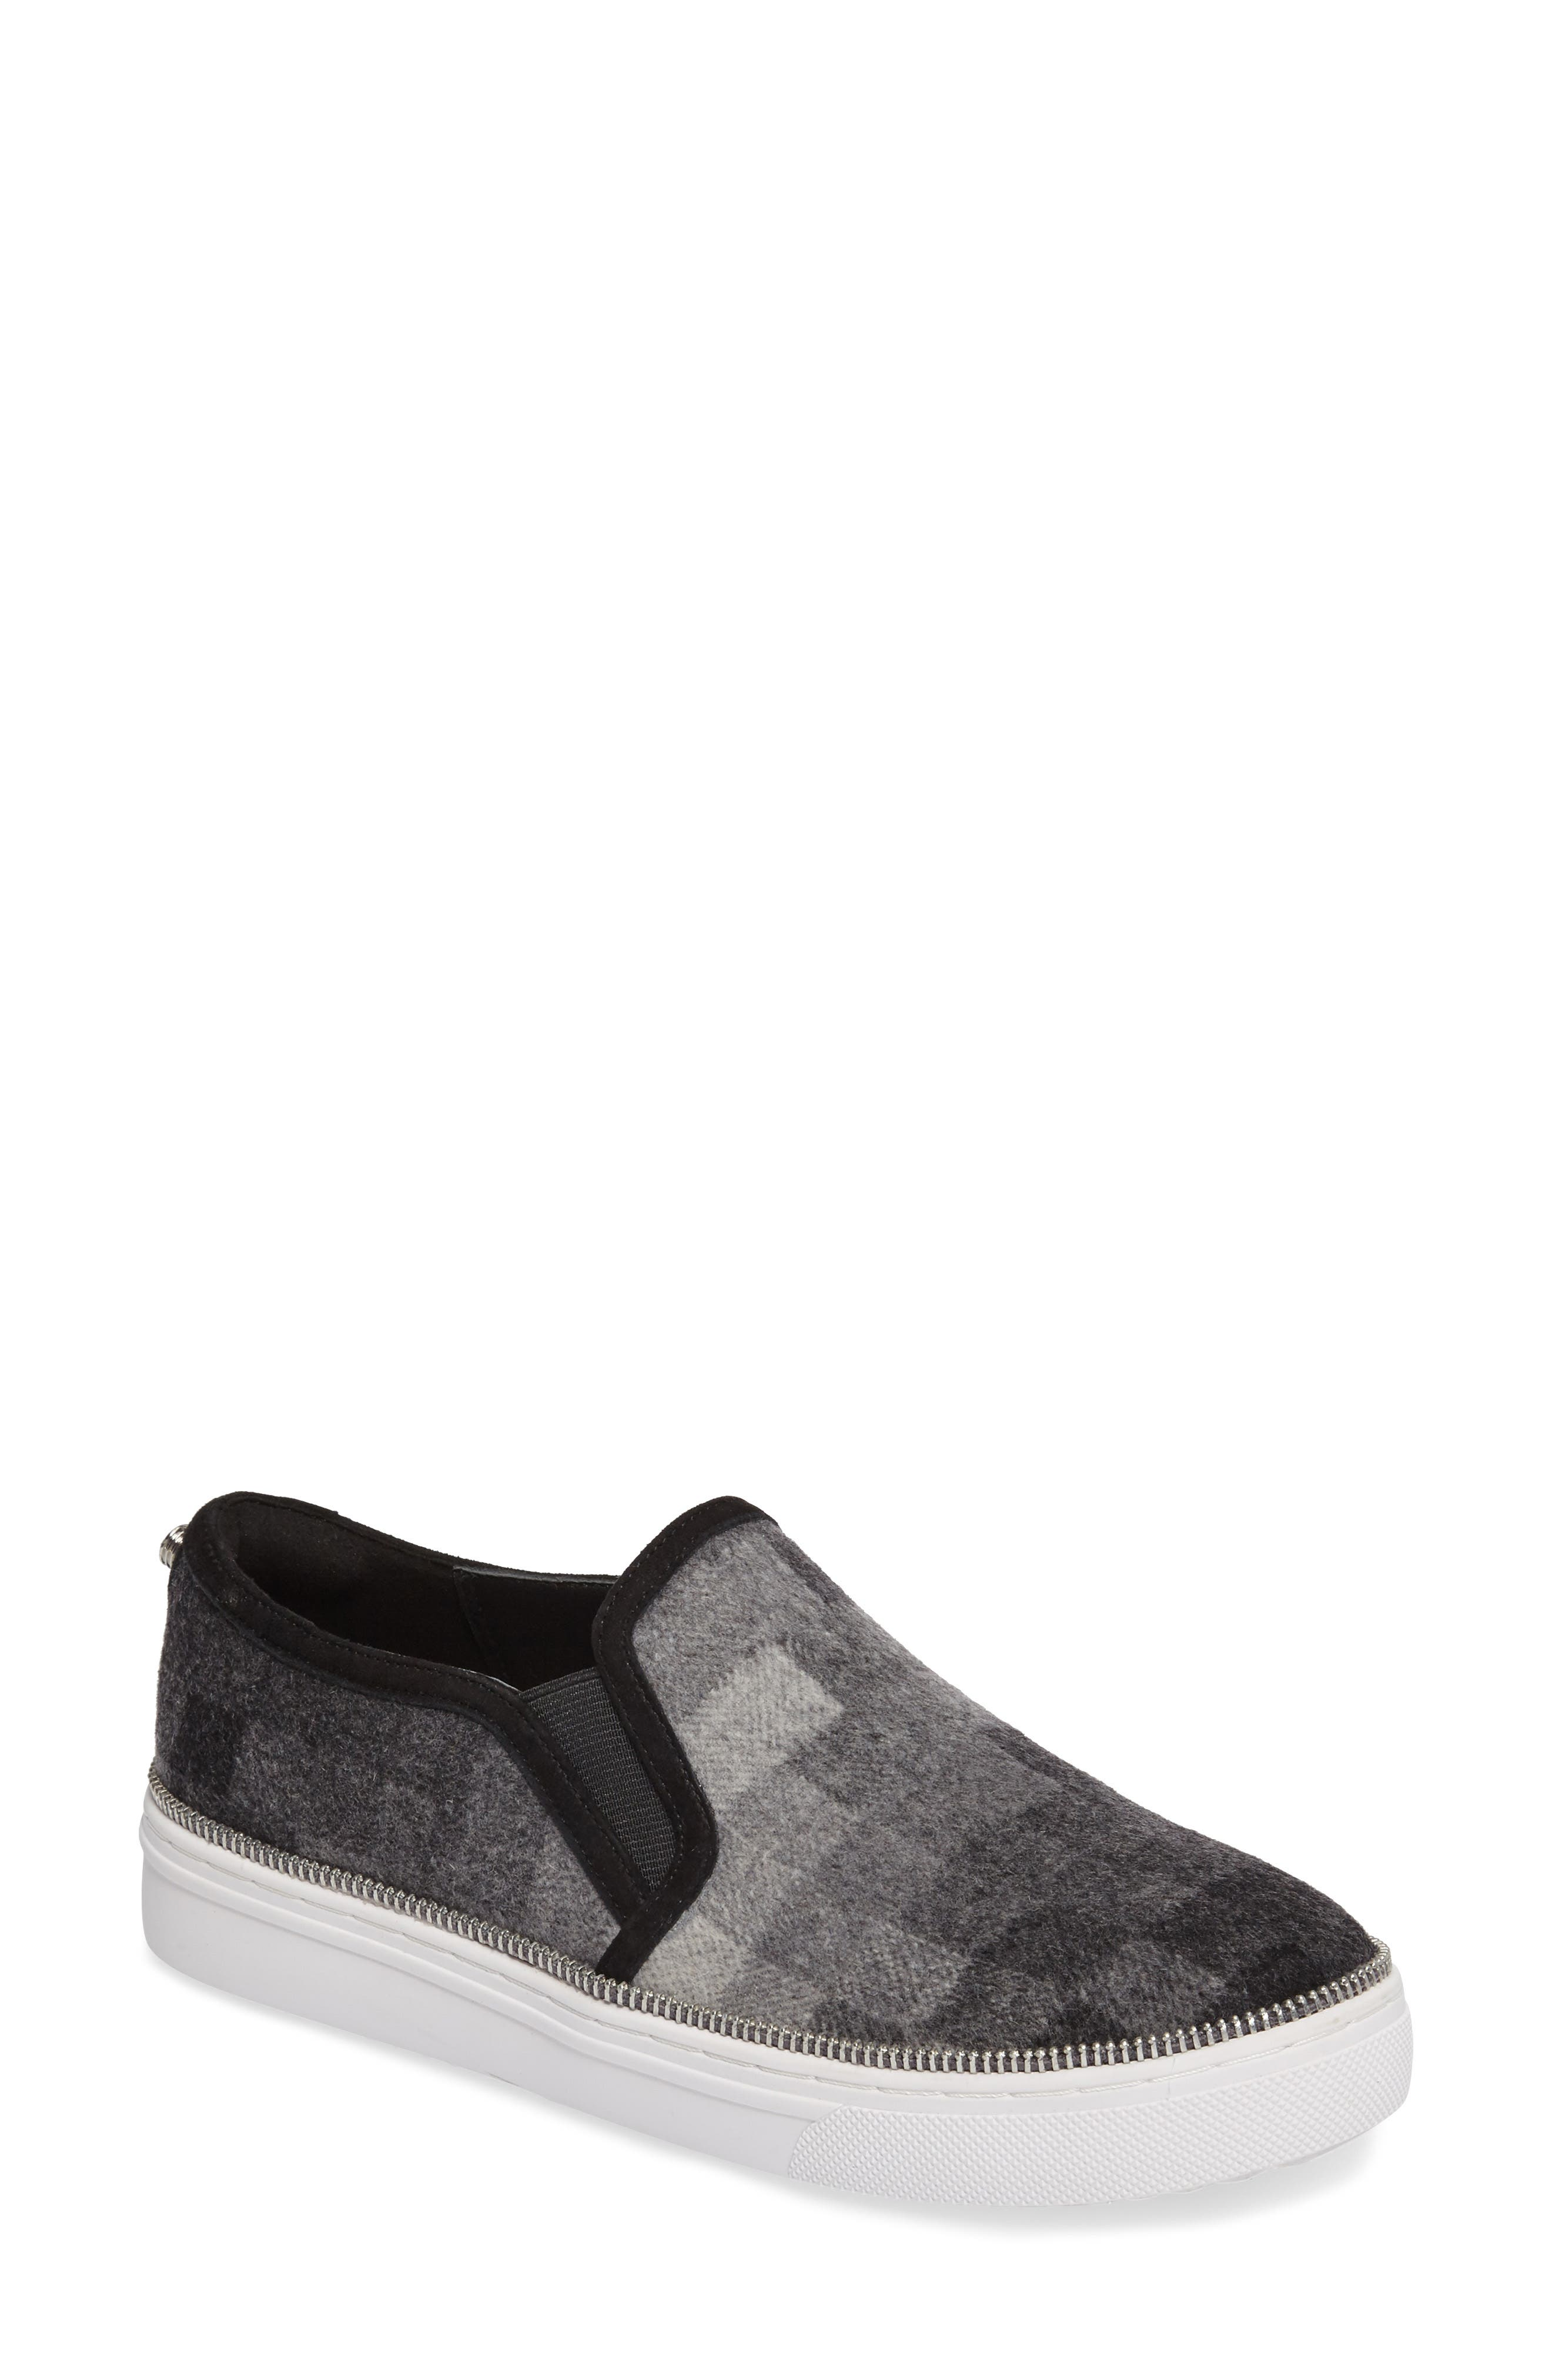 Botkier Harper Slip-On Sneaker (Women)